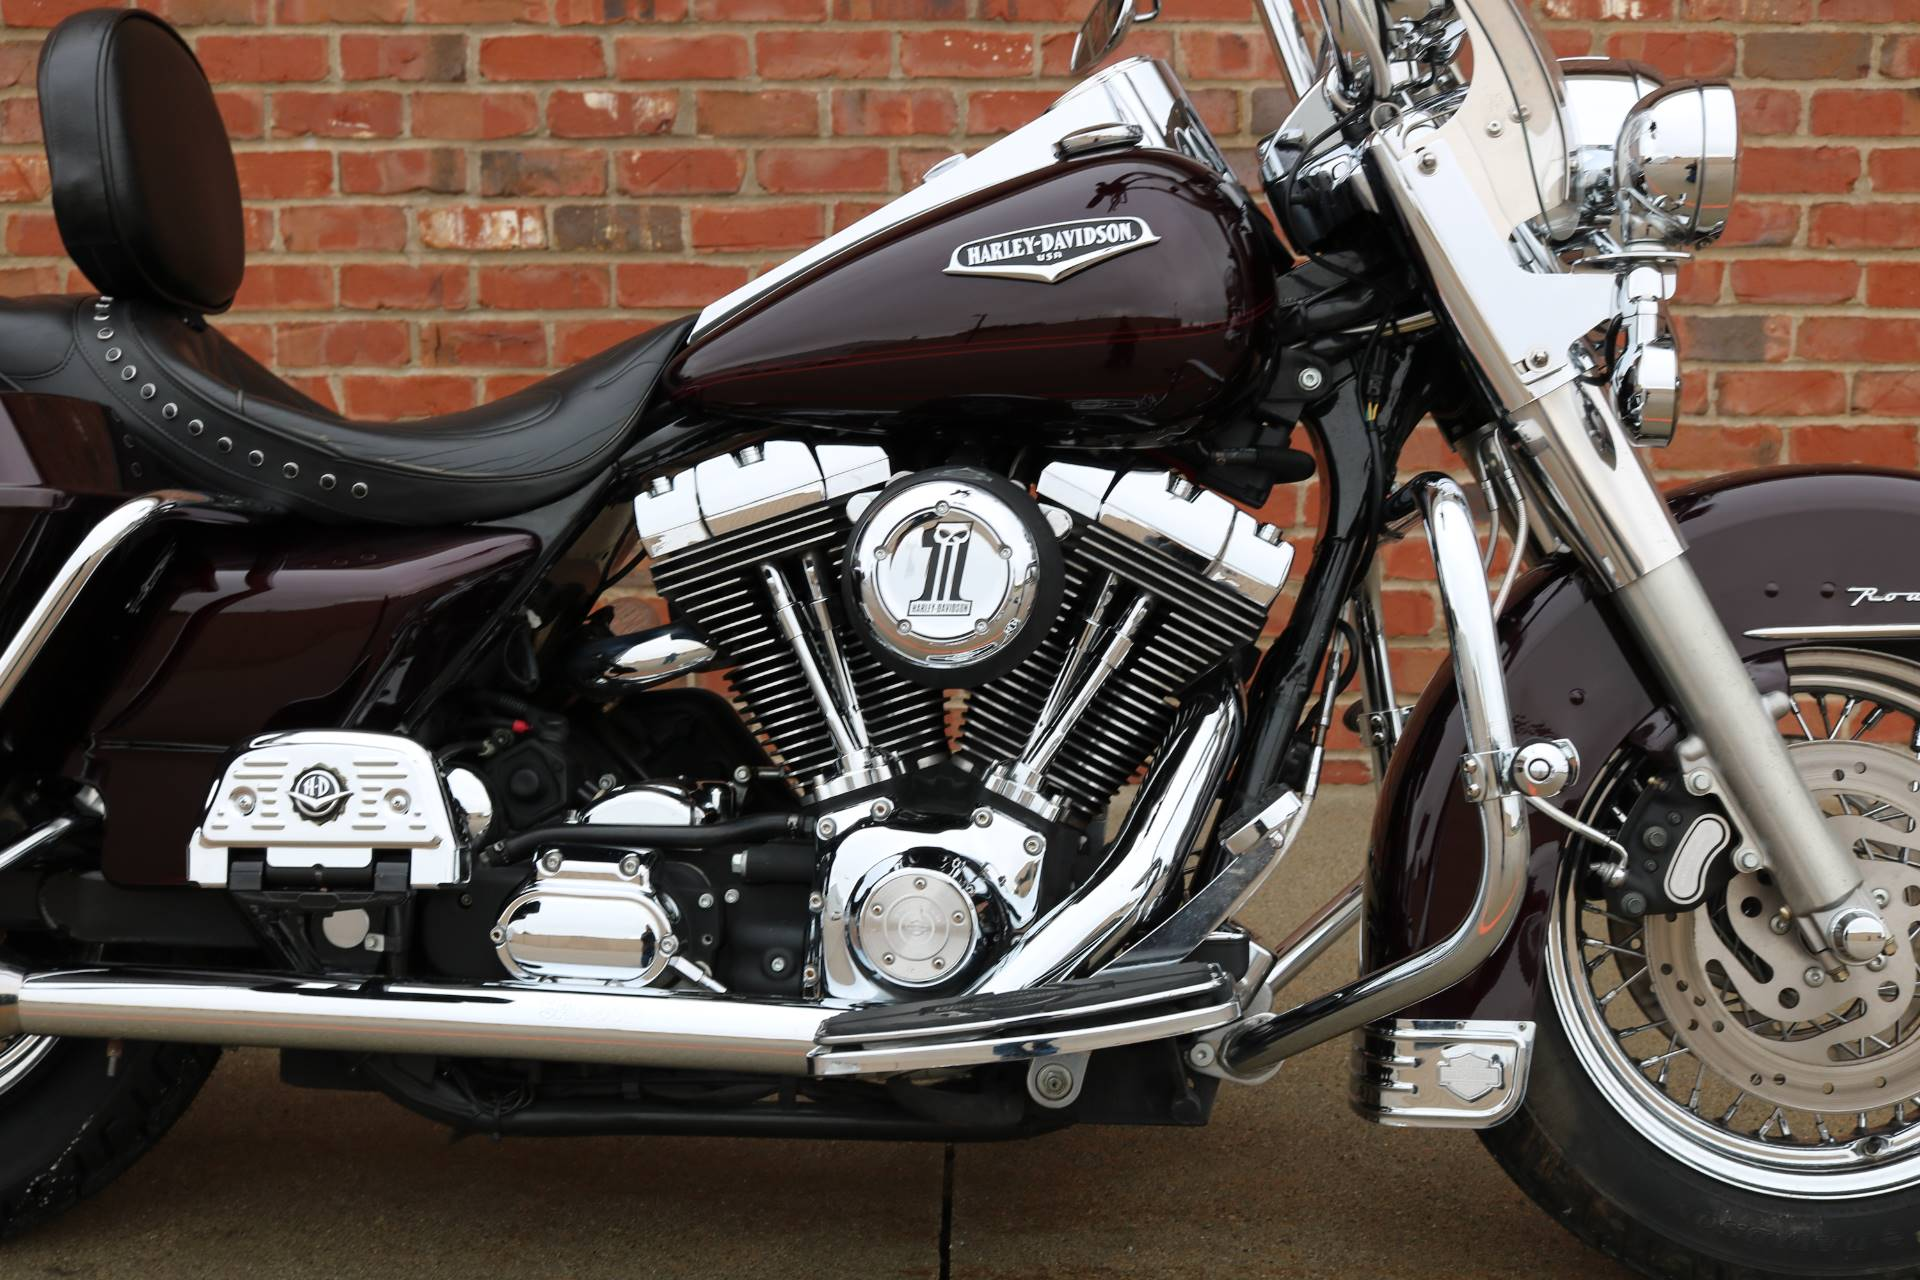 Used 2005 Harley Davidson Flhrci Road King Classic Motorcycles In Ames Ia Uhd615519 Black Cherry Pearl